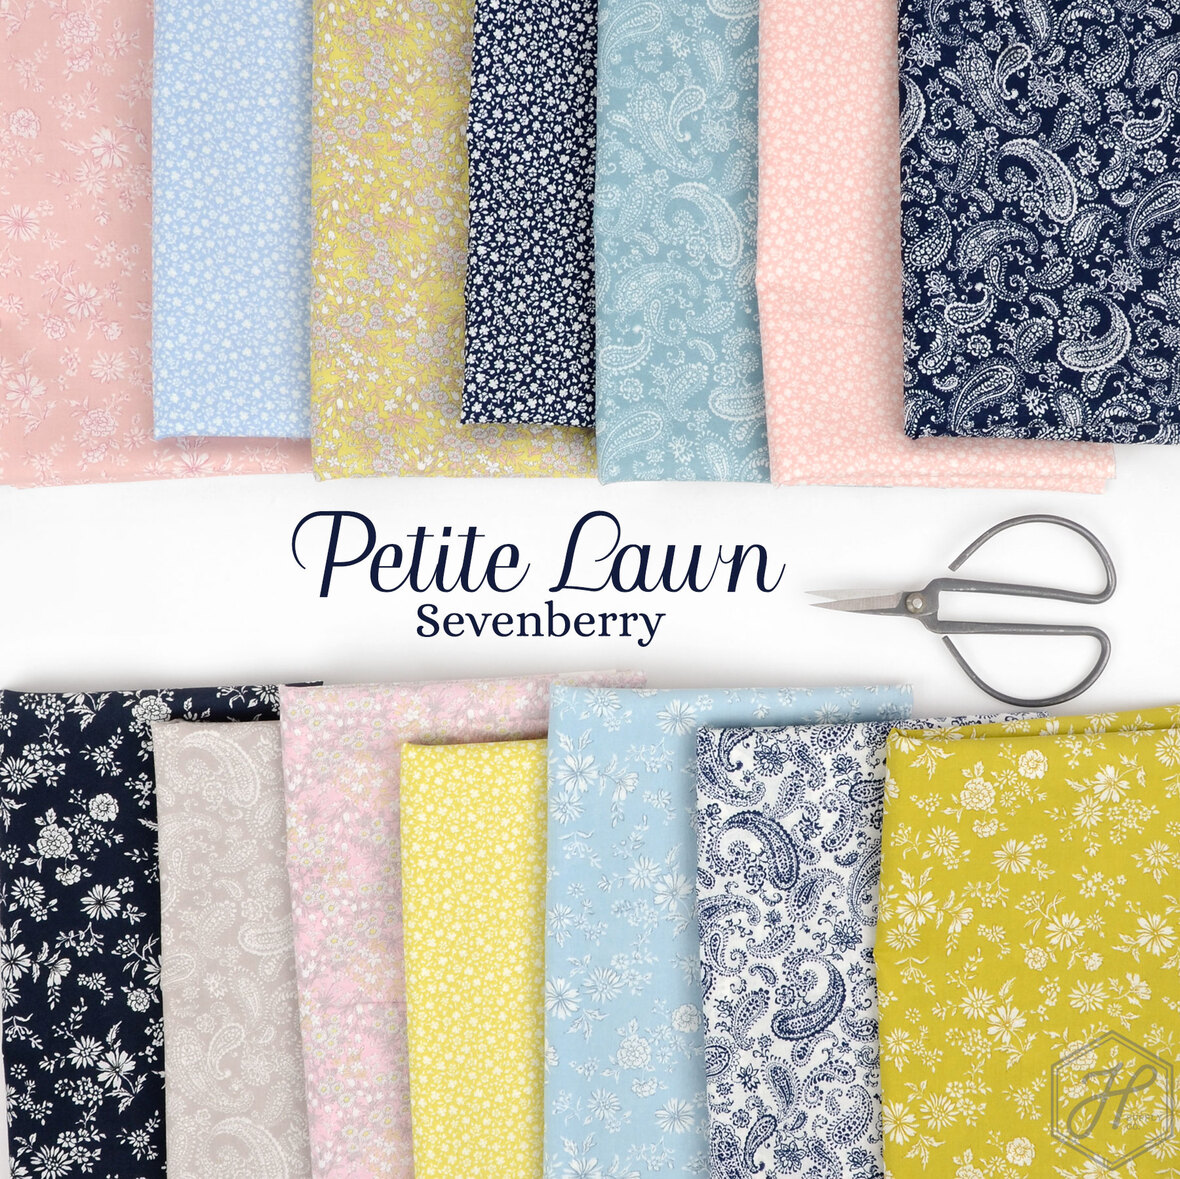 Petite-Lawn-Fabric-Sevenberry-for-Robert-Kaufman-at-Hawthorne-Supply-Co